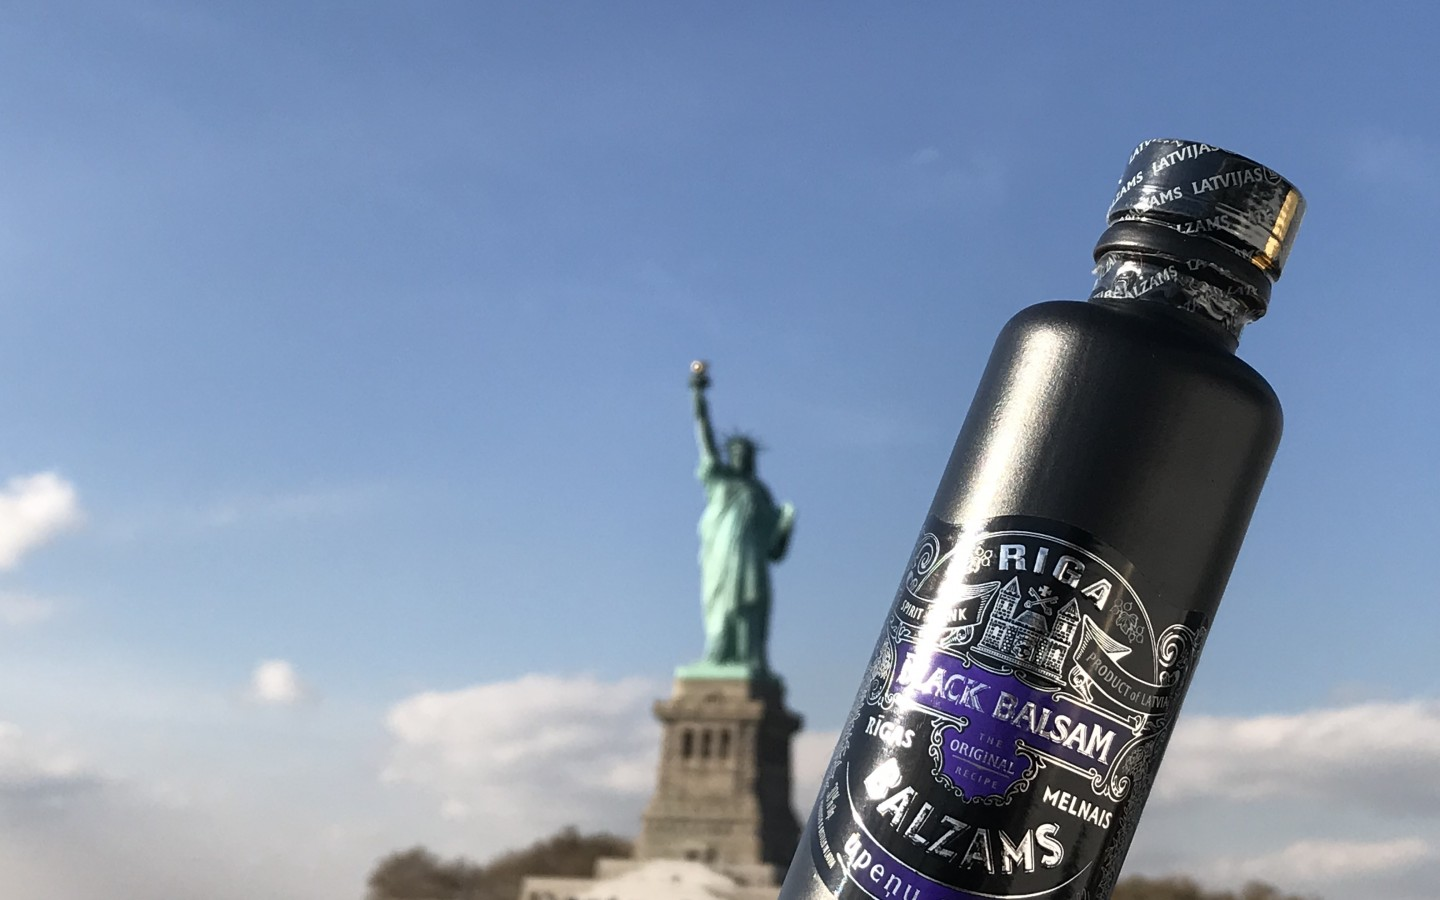 Riga Black Balsam Has A New Partner in the United States